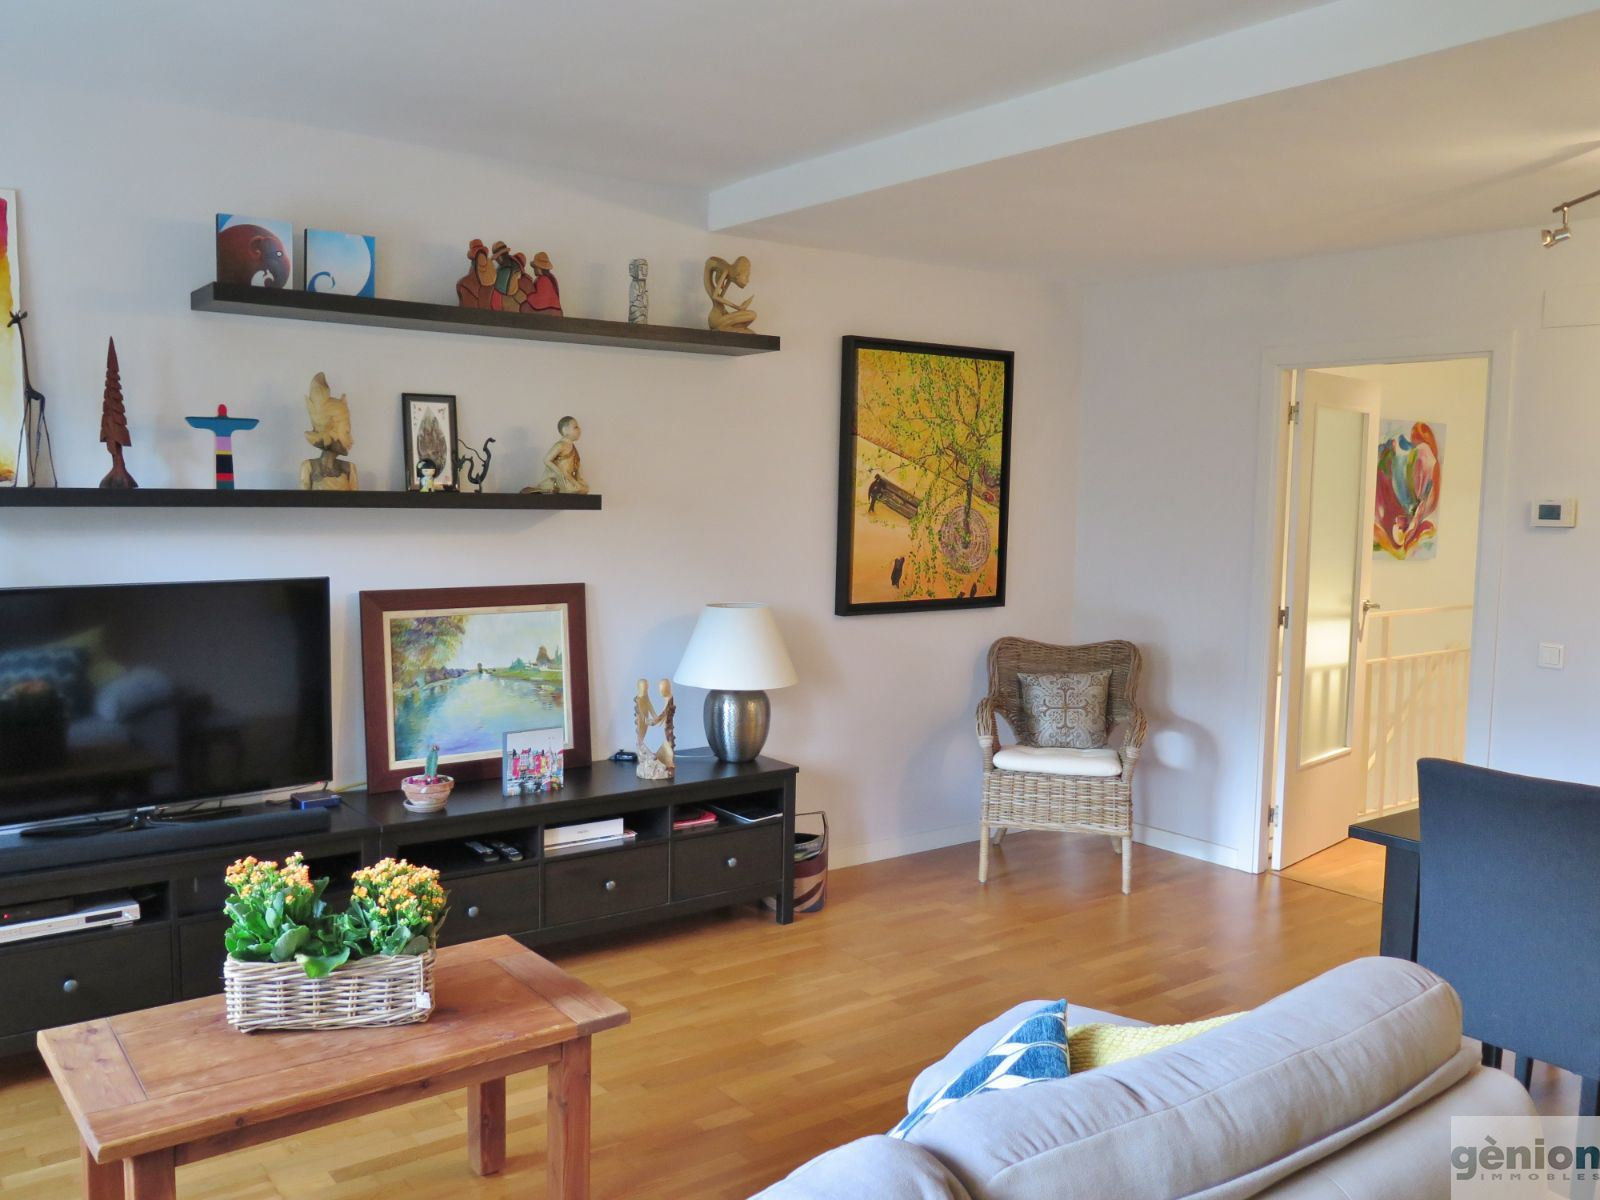 THREE-BEDROOM, TWO-STOREY APARTMENT IN PLA DE PALAU, GIRONA. LARGE PARKING SPACE INCLUDED